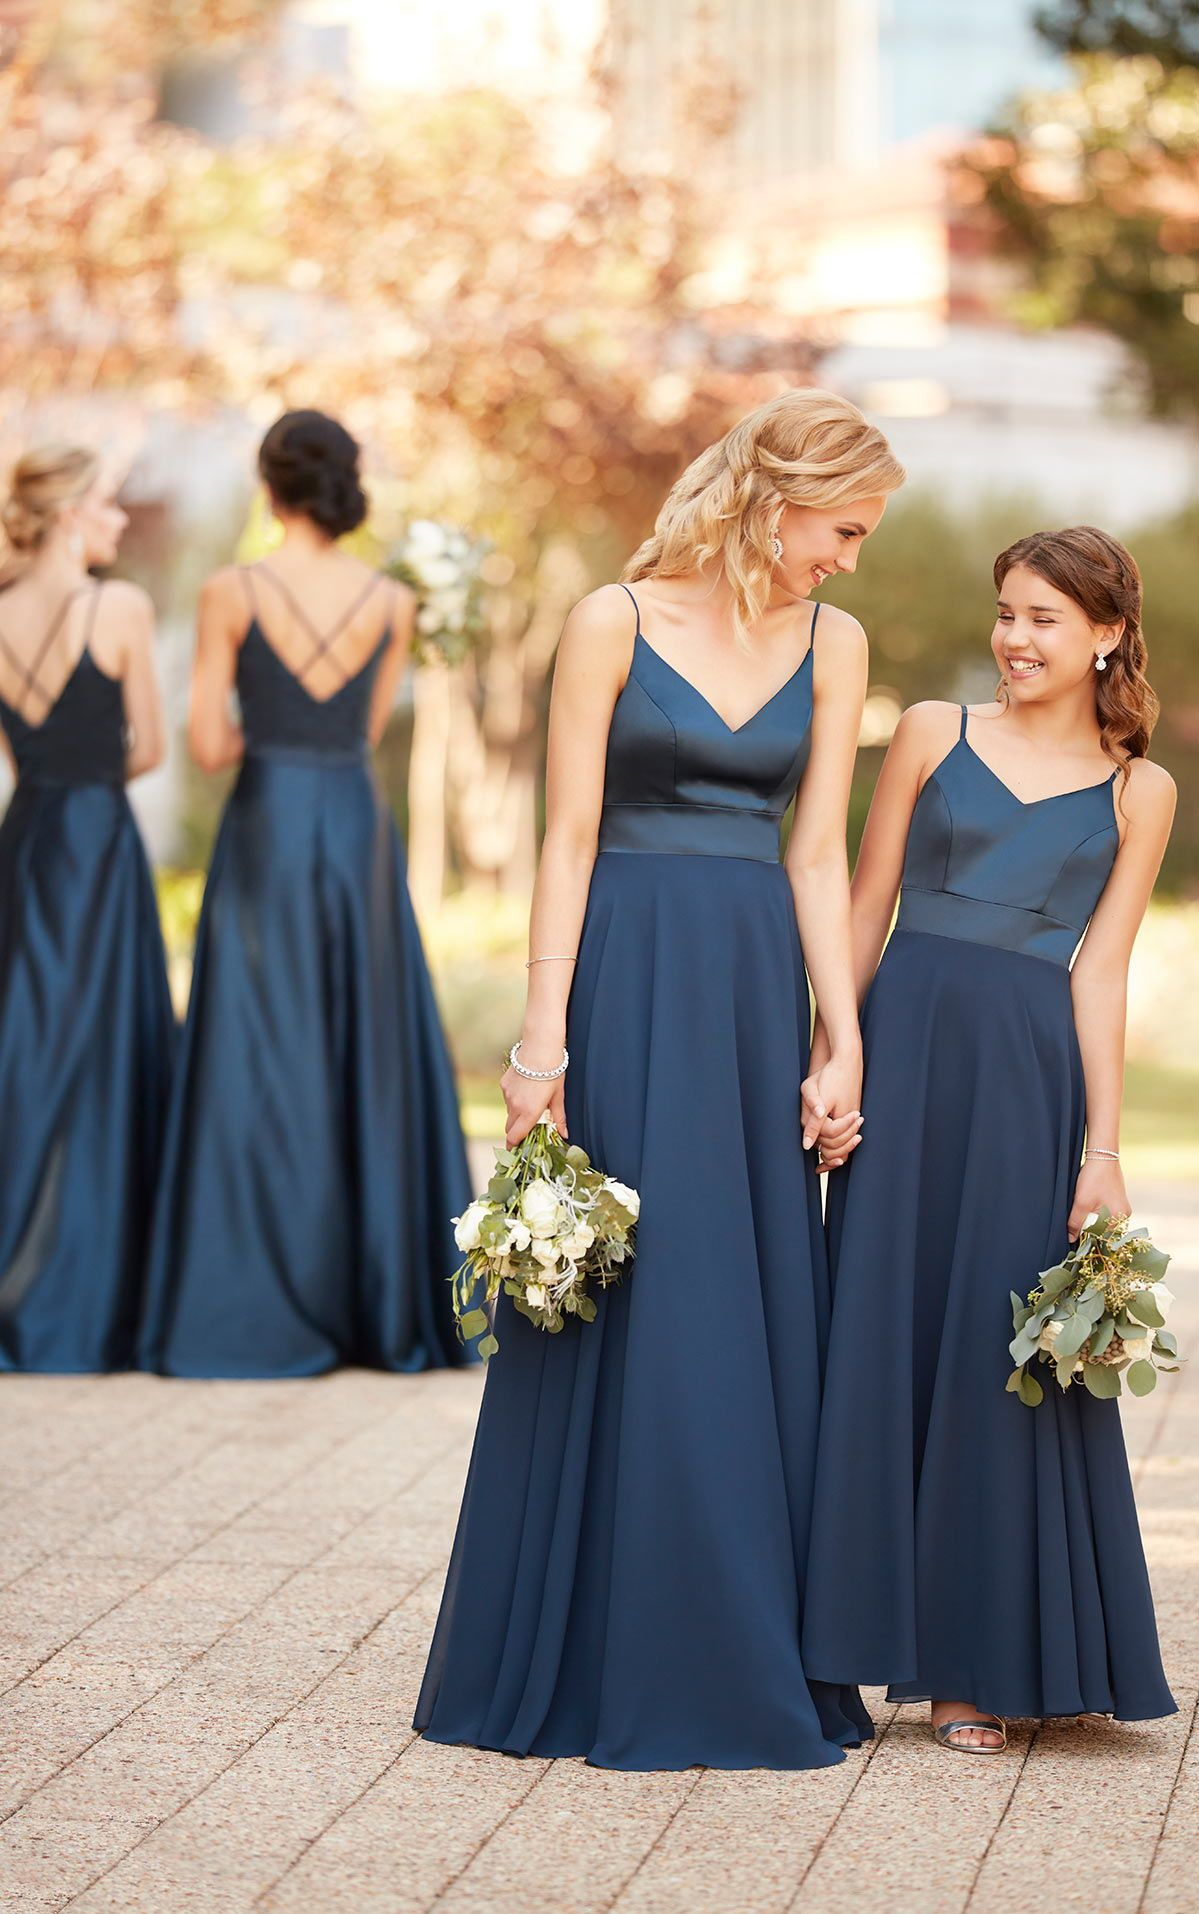 eae77434a5f Did you know we have Junior bridesmaid dresses